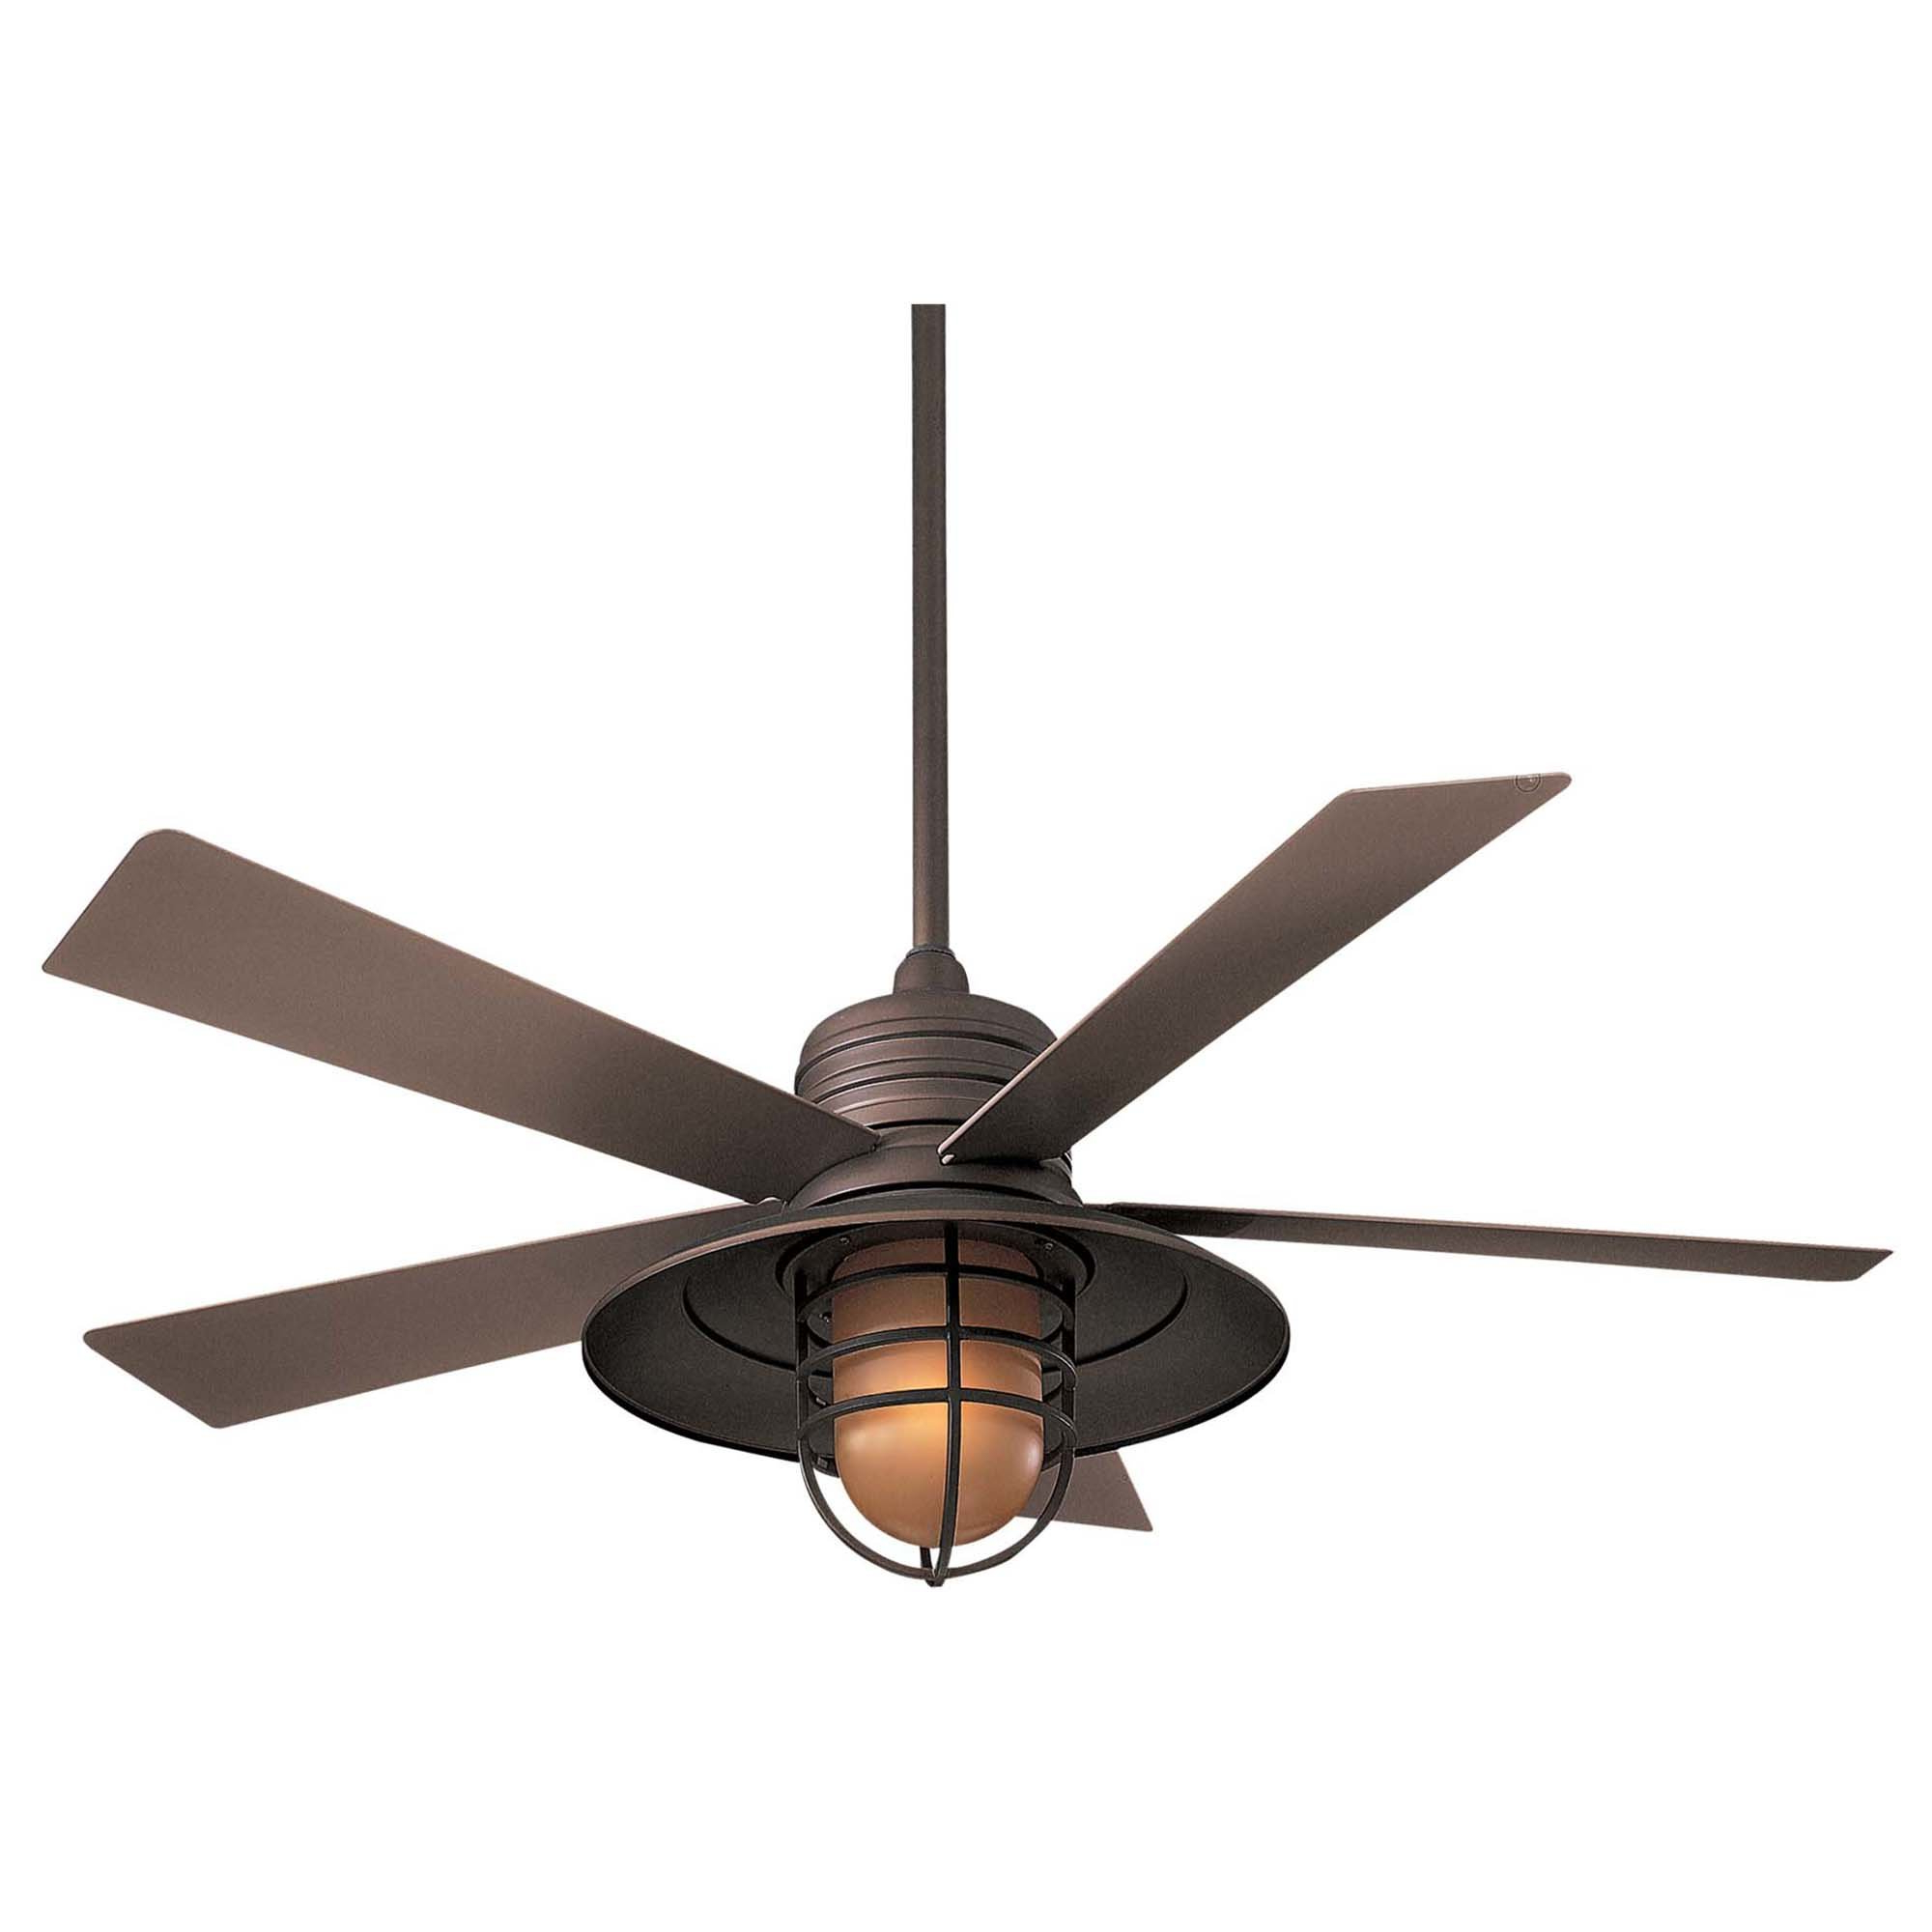 Popular Rainman 5 Blade Outdoor Ceiling Fans Regarding Minka Aire 54 Rainman 5 Blade Outdoor Ceiling Fan (View 3 of 20)